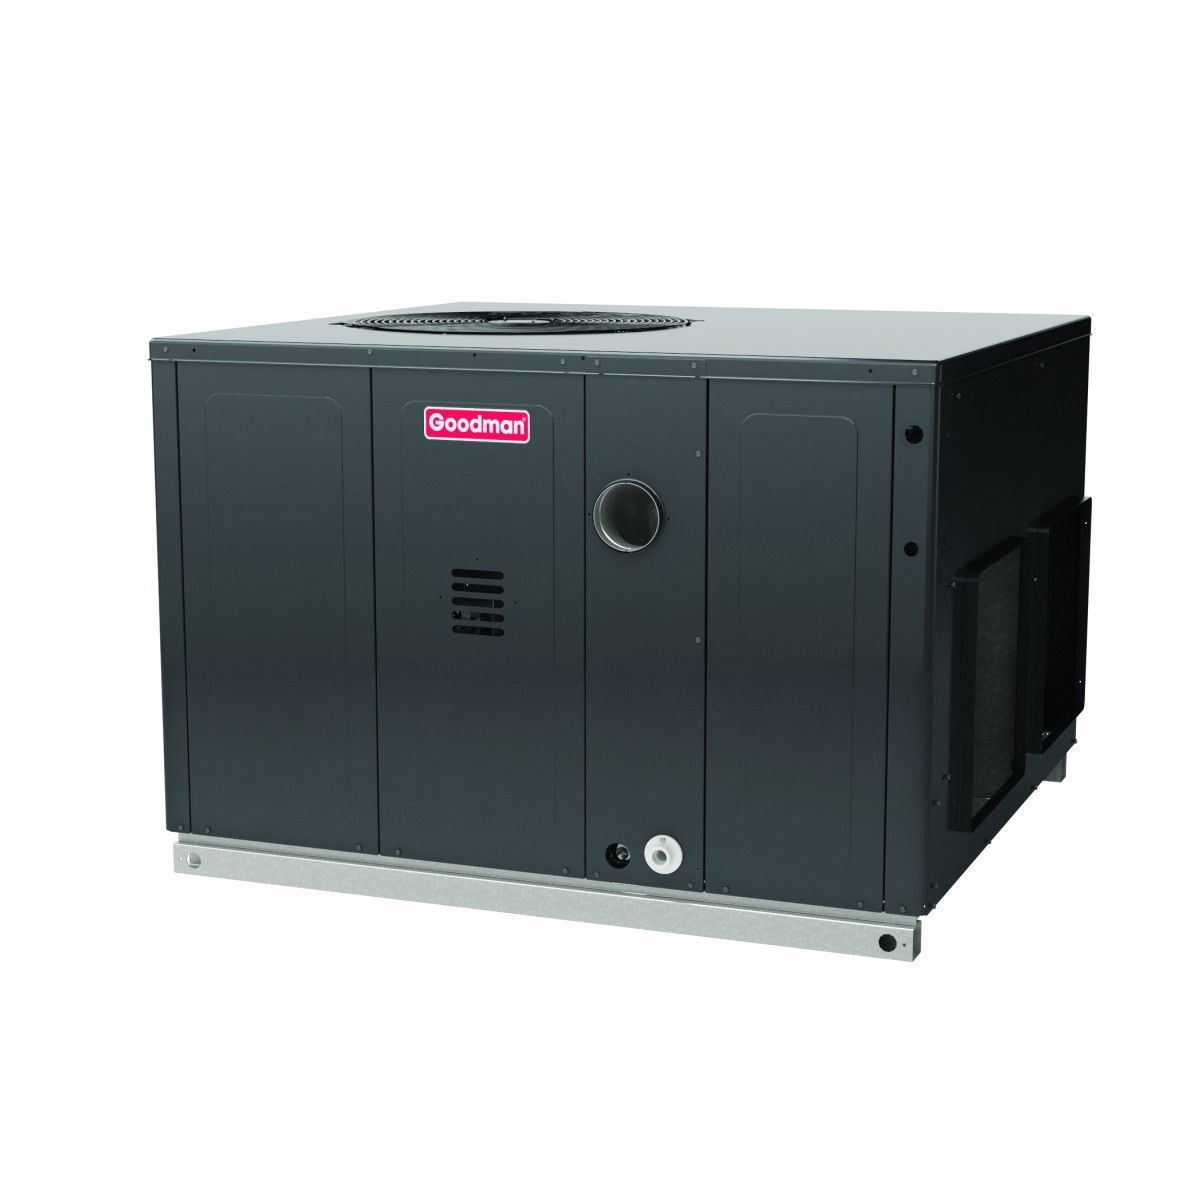 Goodman 3 0 Ton 14 Seer 80k Btu Packge Unit With Gas Heat